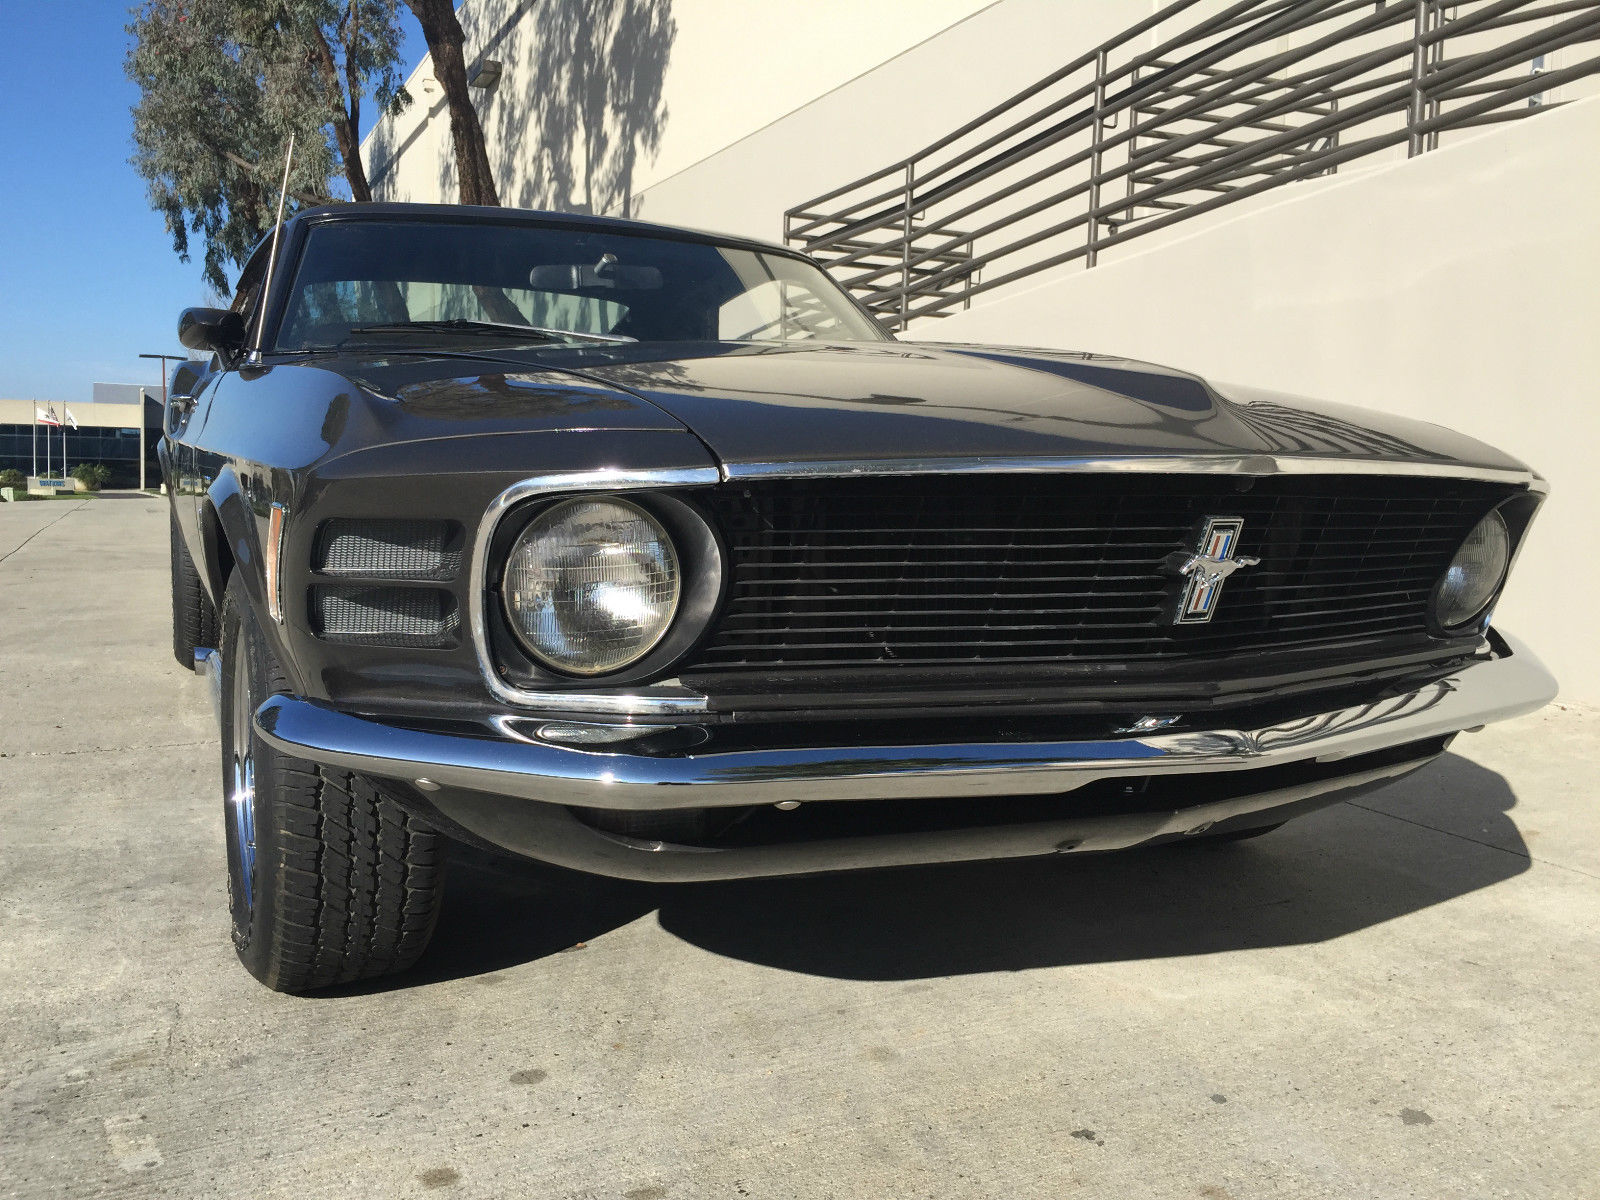 1970 Mustang Fastback Project Car For Sale